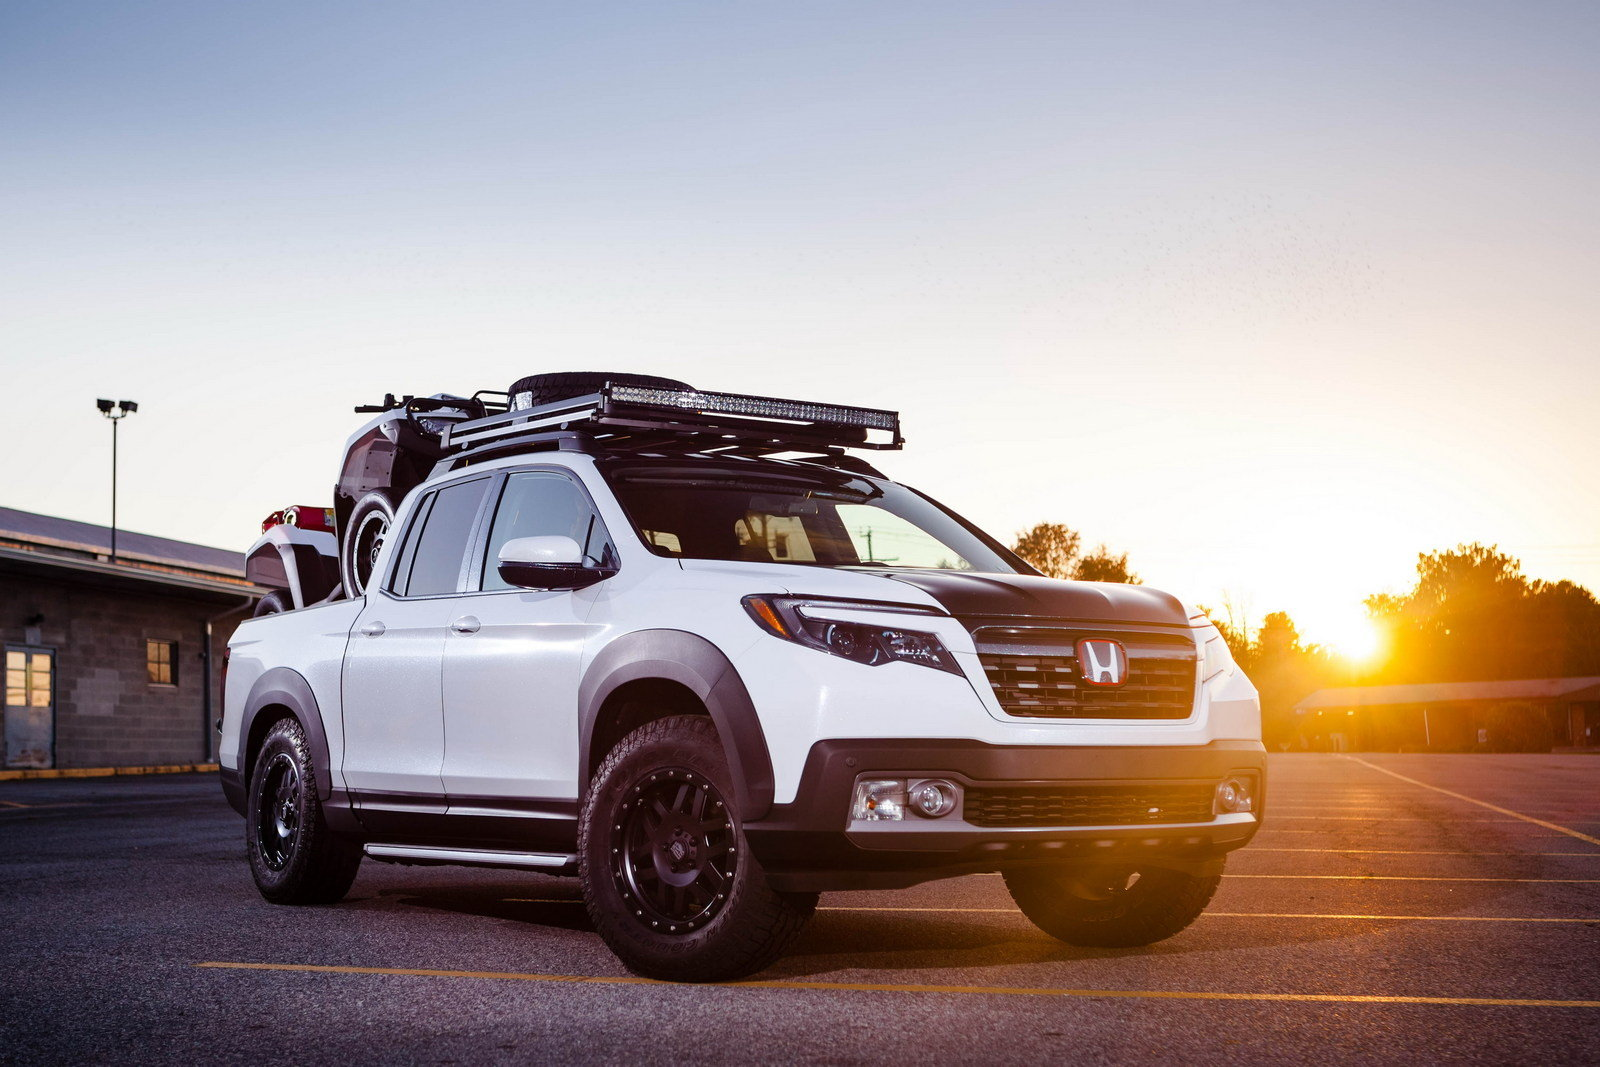 2017 honda ridgeline by fox marketing picture 693413 truck review top speed. Black Bedroom Furniture Sets. Home Design Ideas